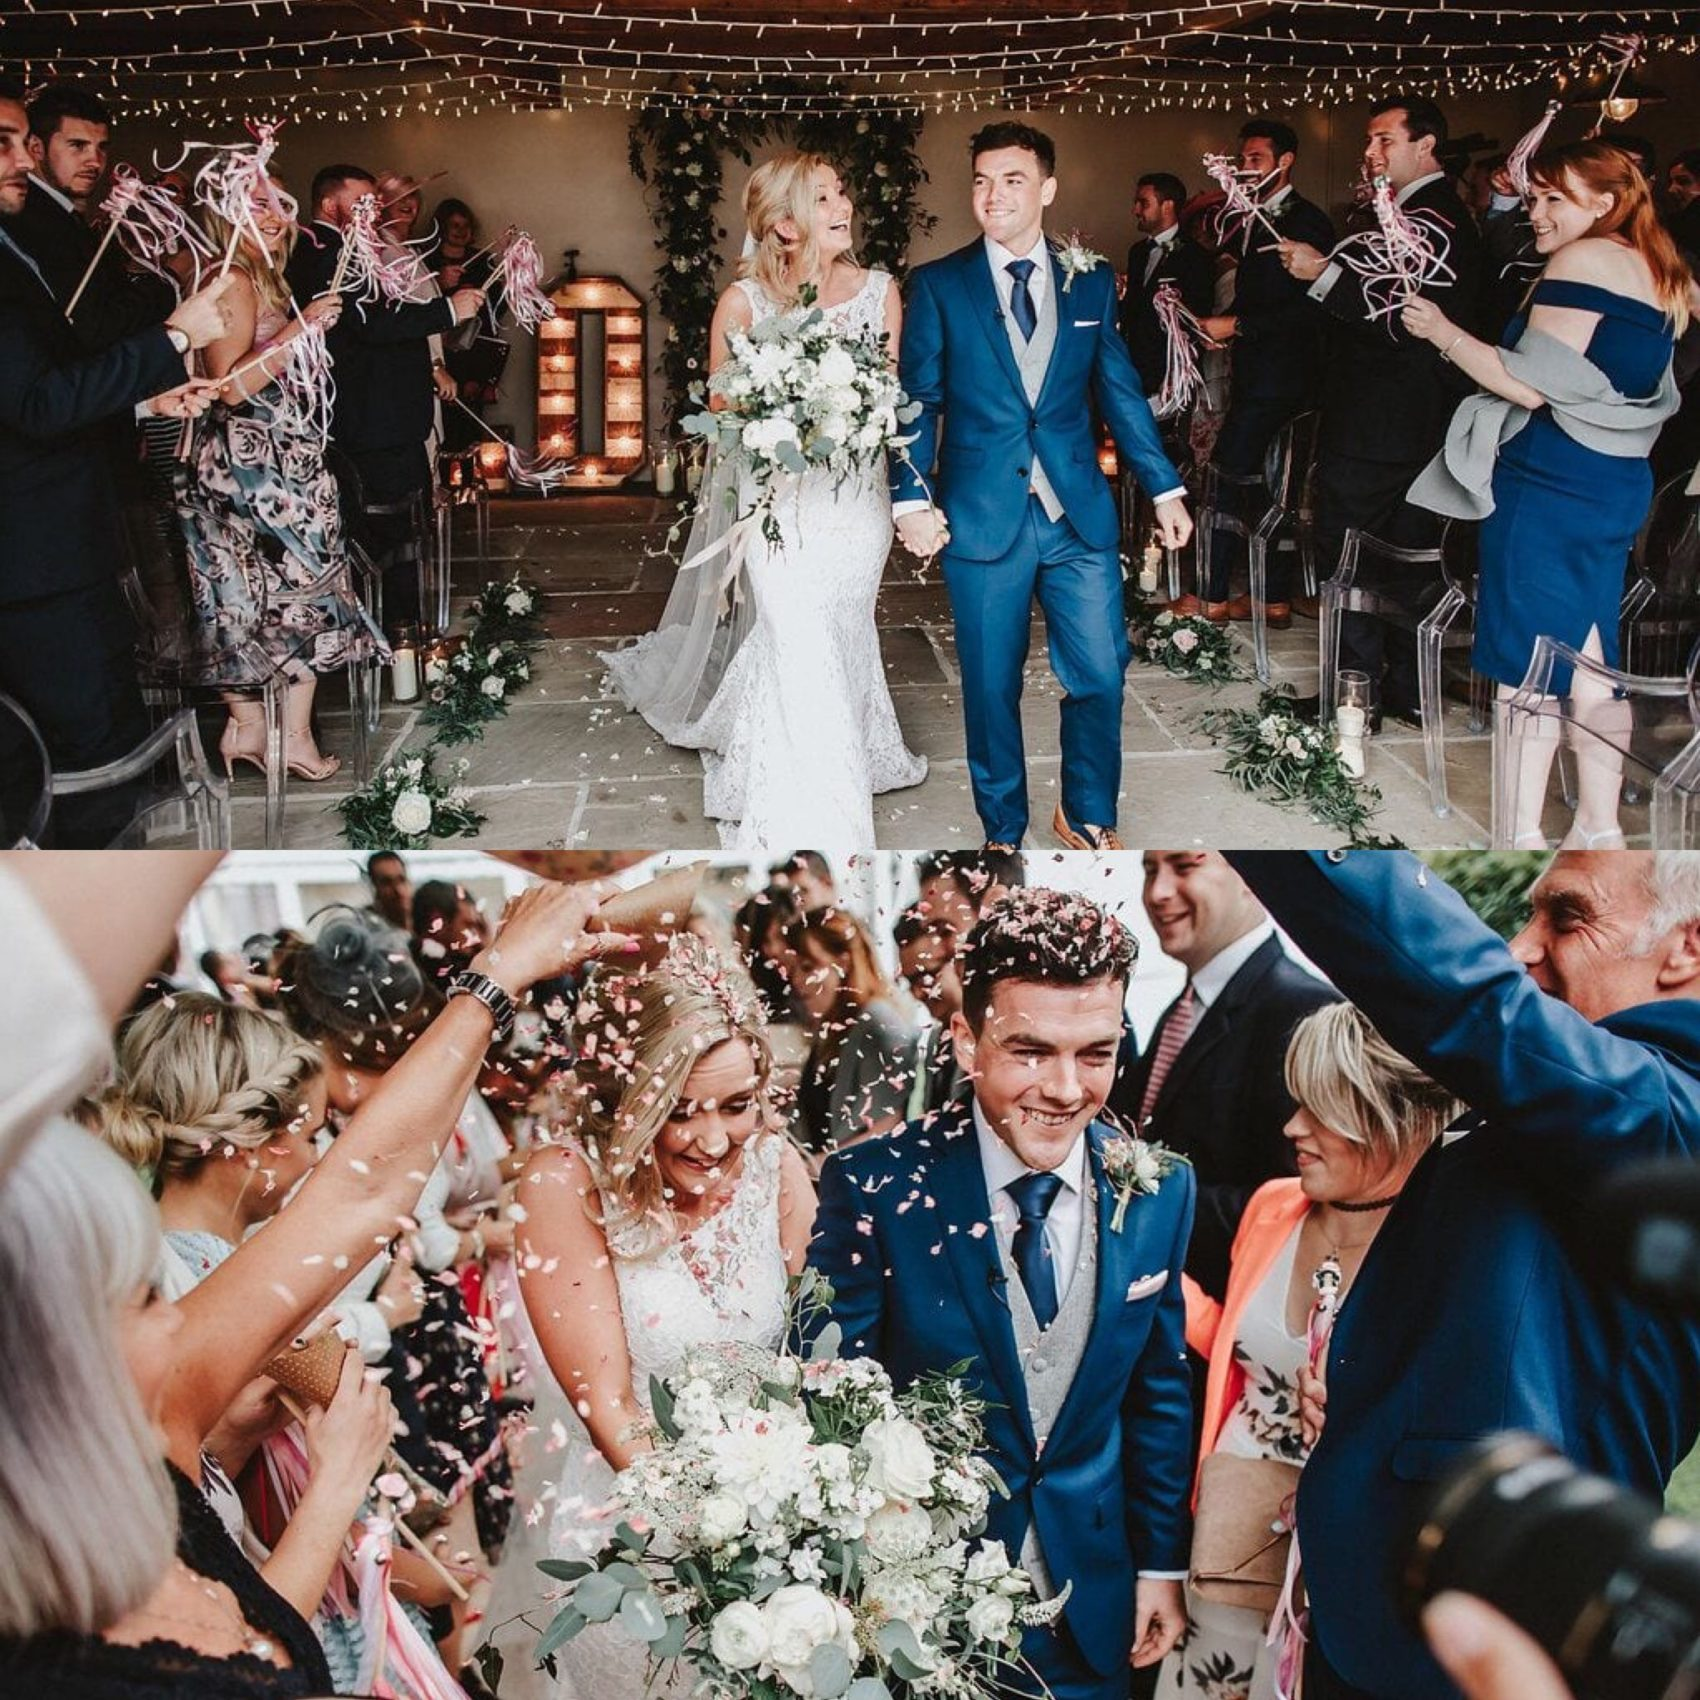 Wedding, barn, bride & groom, confetti, guests, flowers, batons, sparklers, fairy lights, ever after, couple, lower grenofen, photography, dan ward